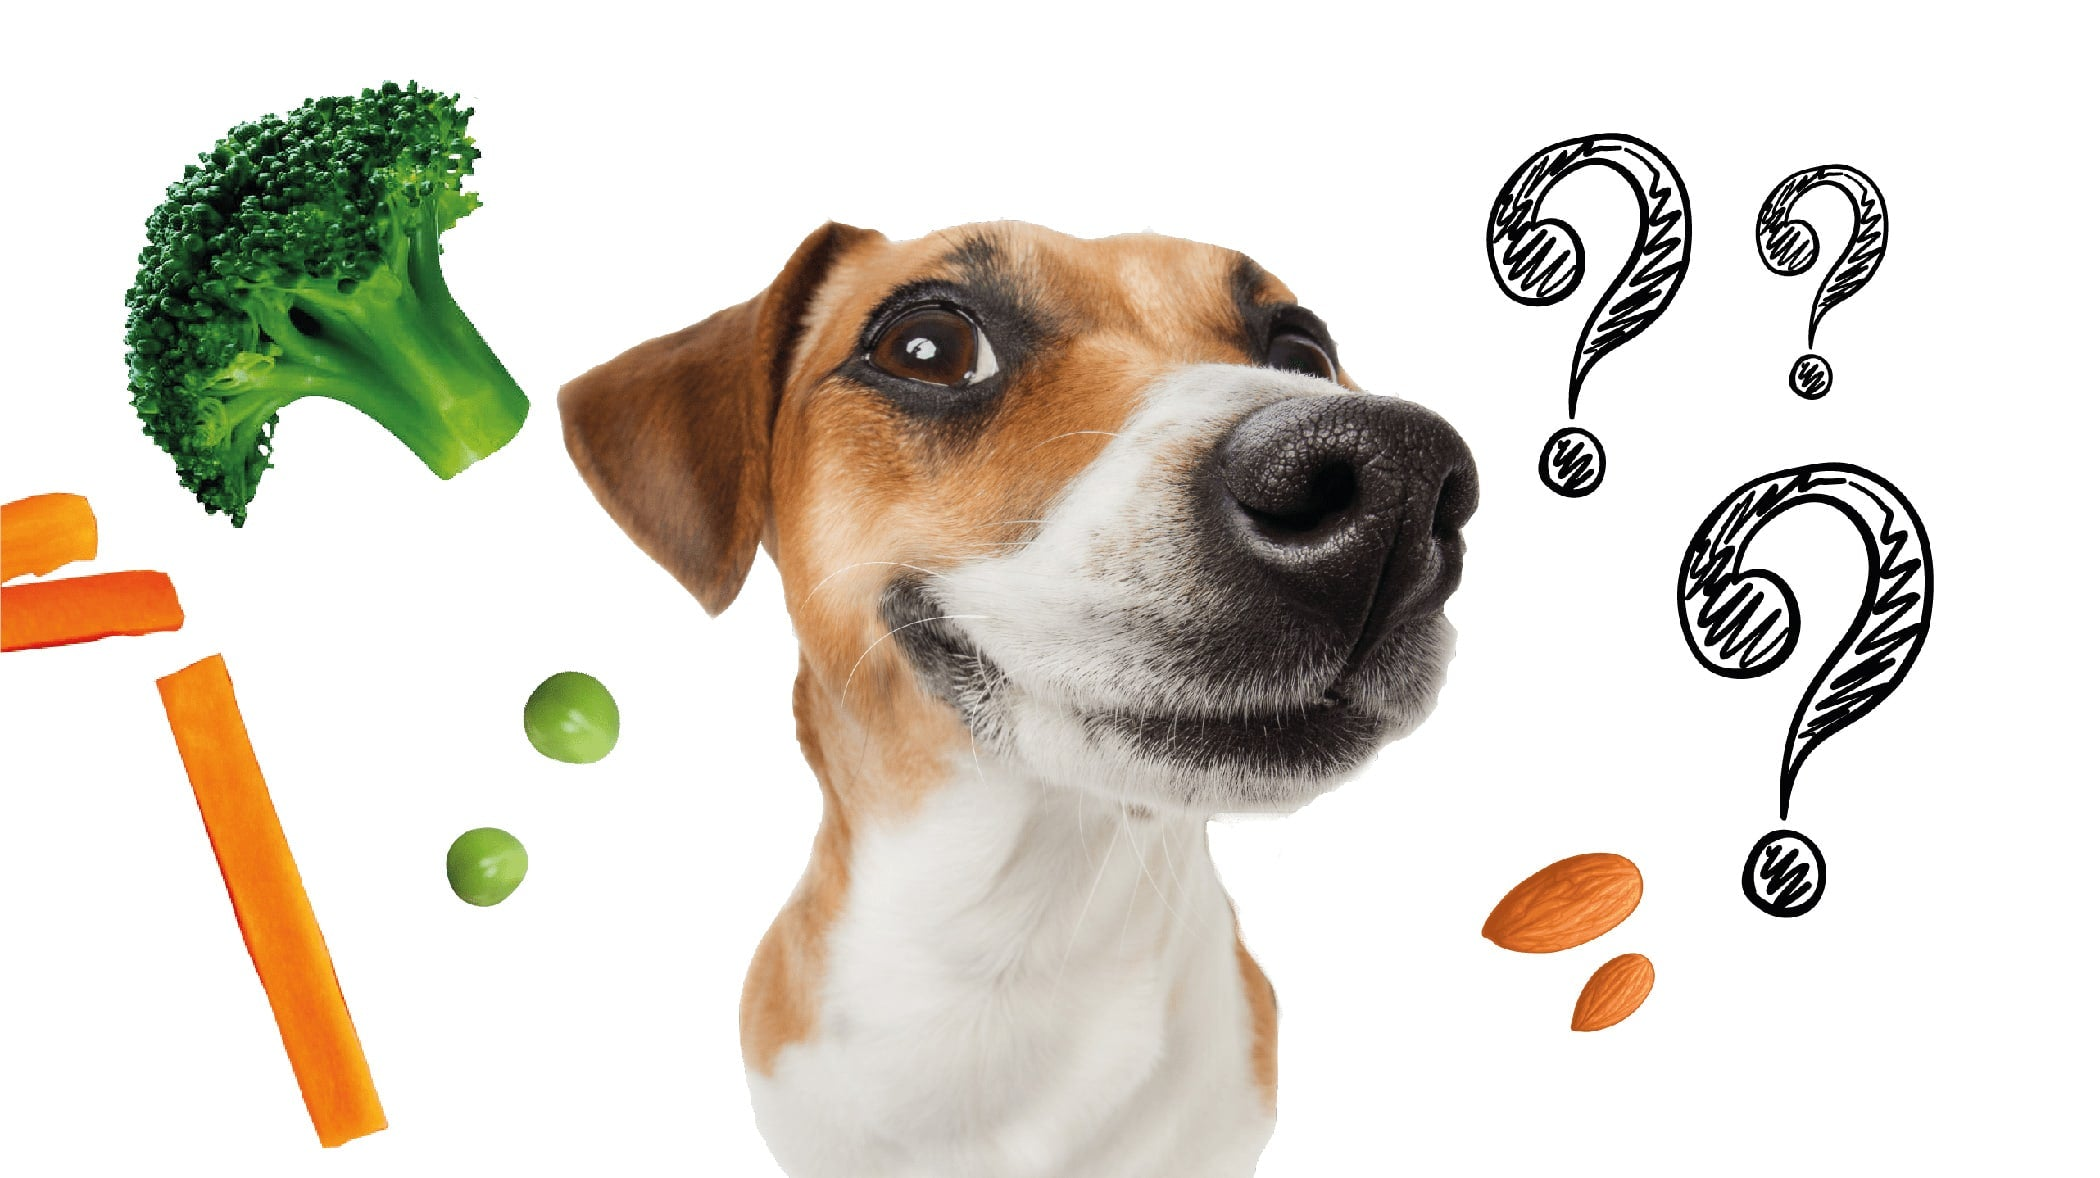 Image of cute dog asking Why Cooked Pet Food?